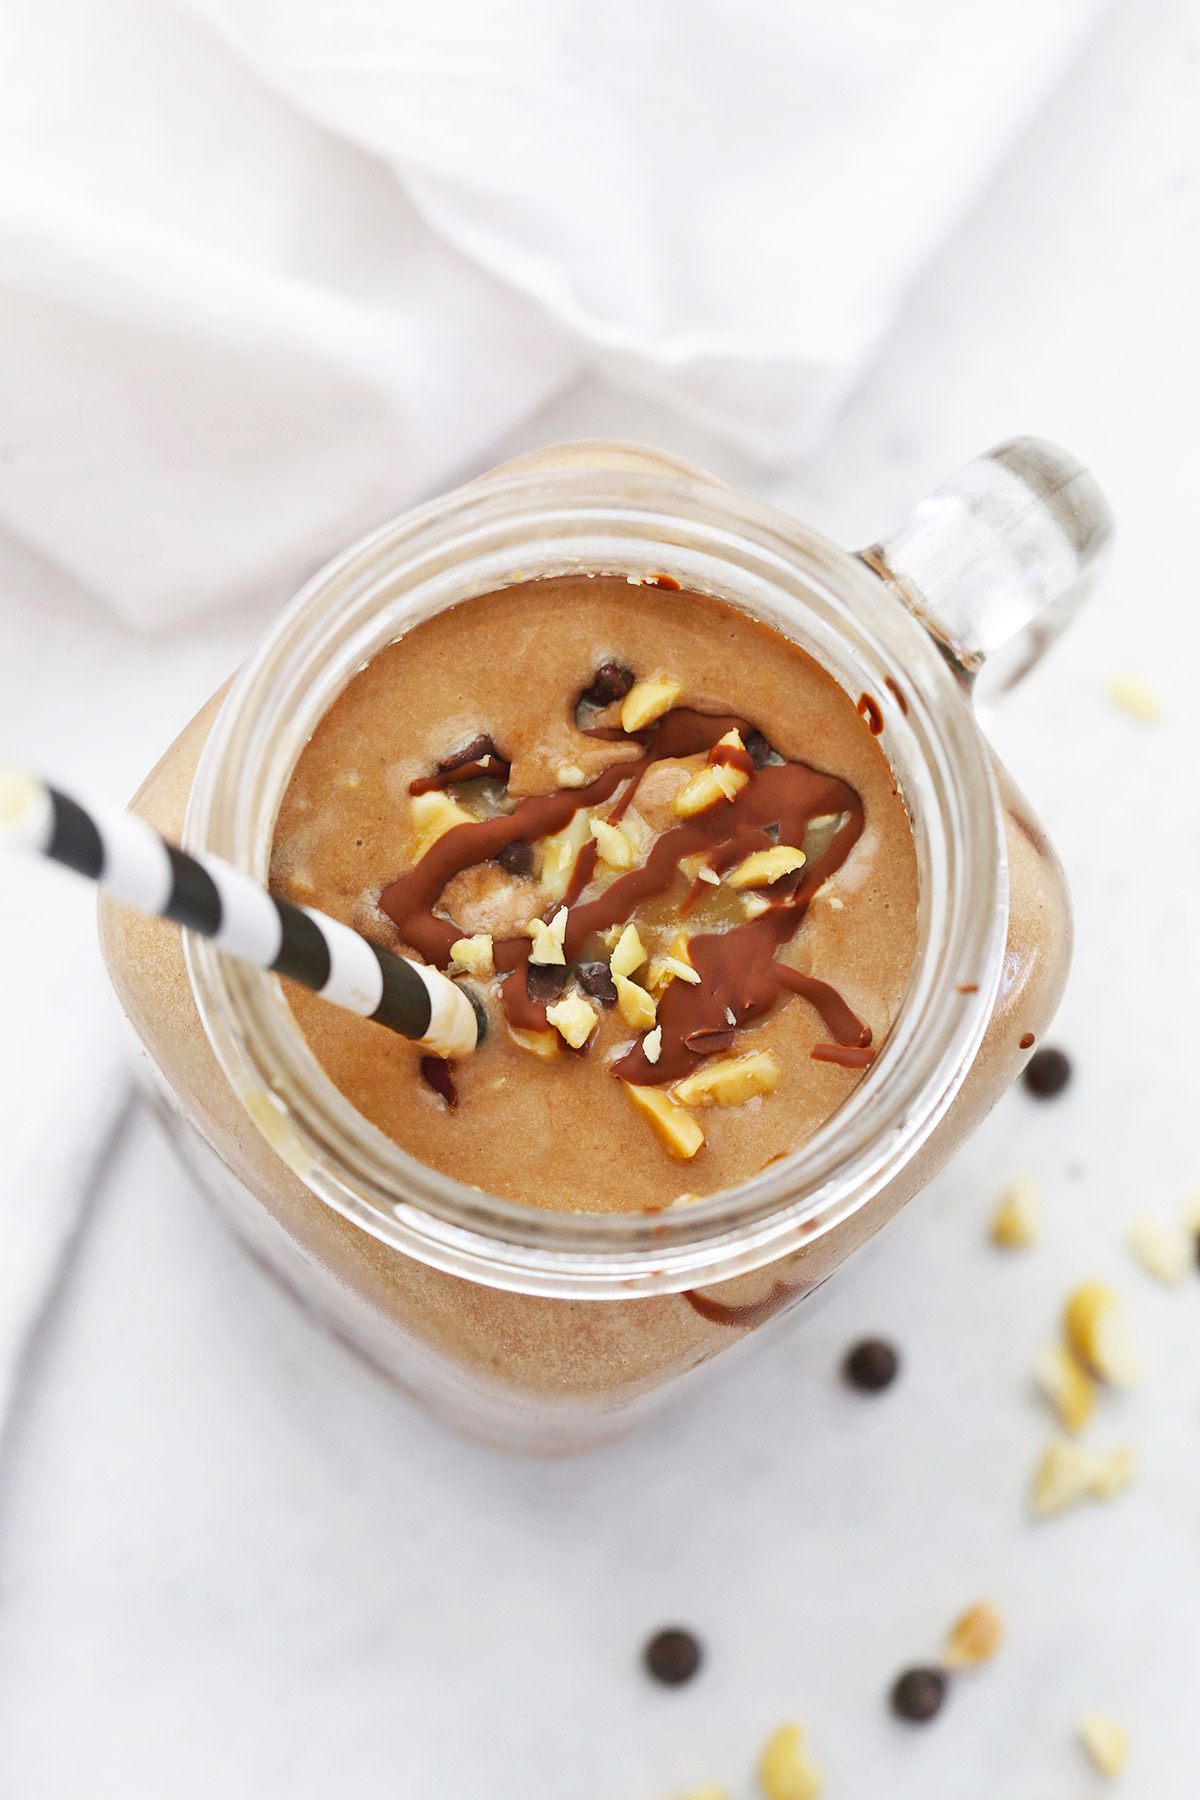 Healthy Snickers Shake from One Lovely Life